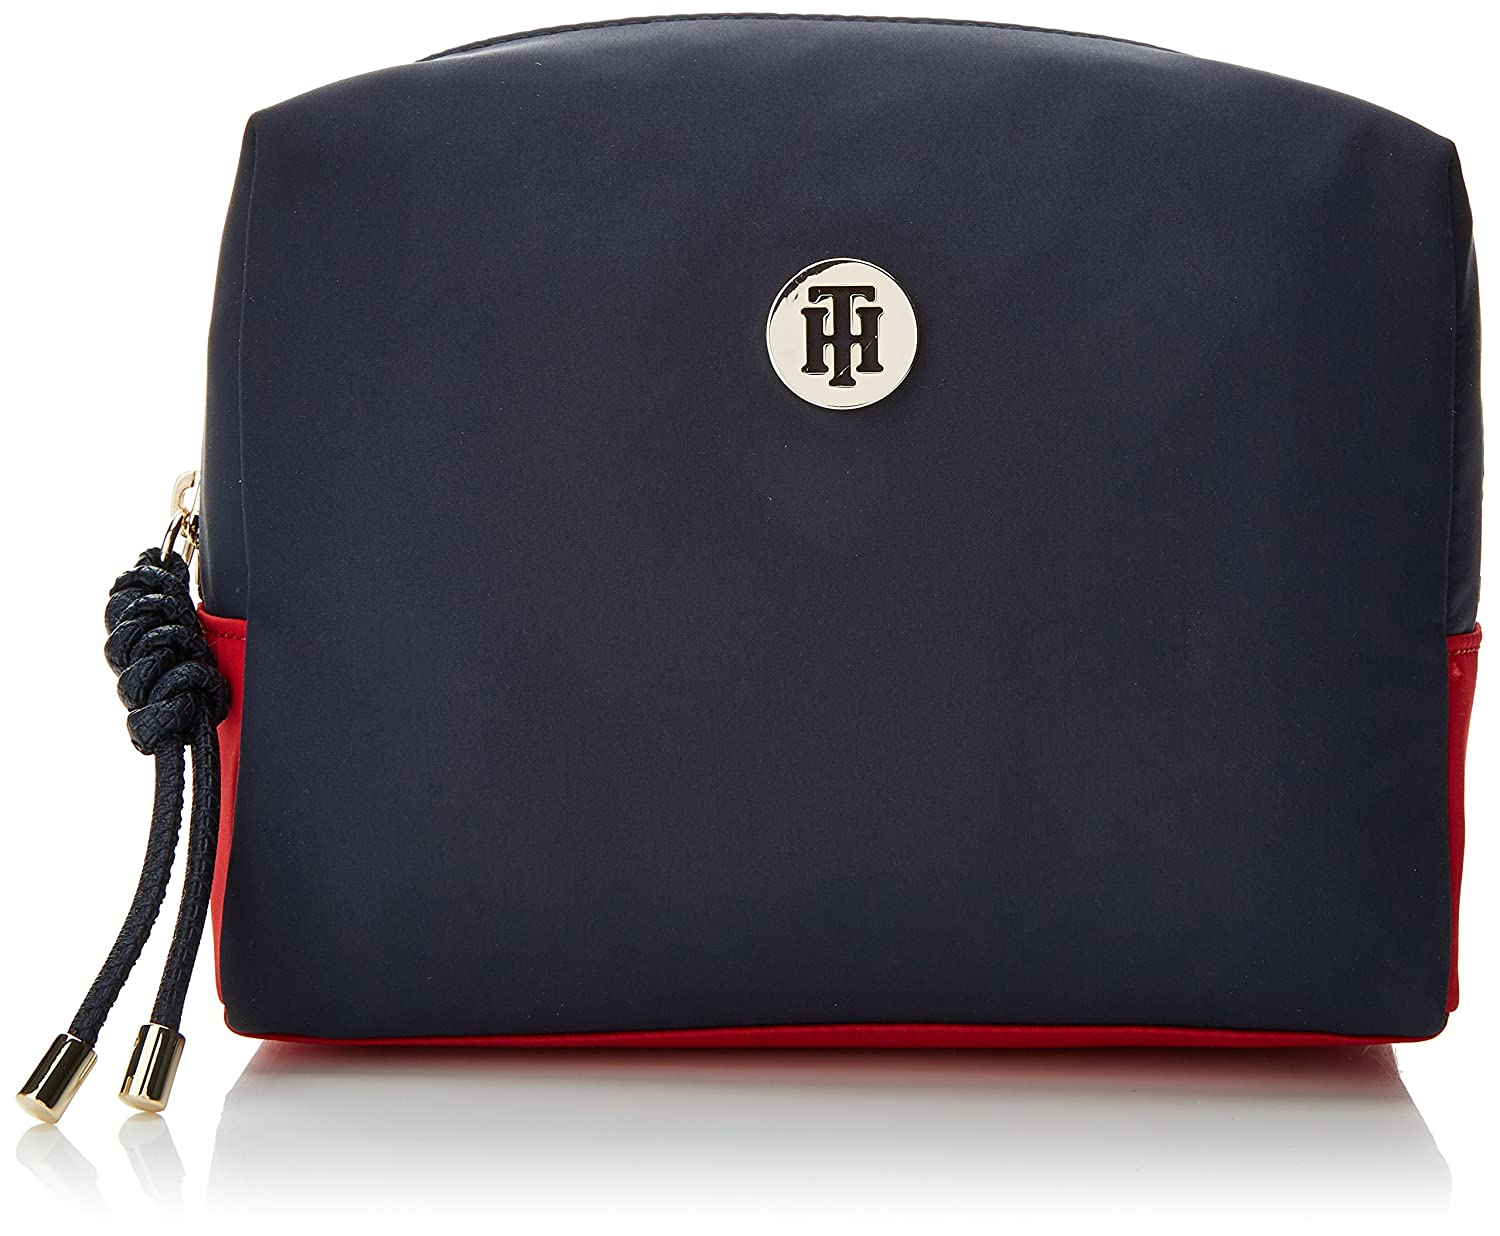 Tommy Hilfiger Damen City Washbag Nylon Taschenorganizer, Blau (Corporate Cb), 6.5x14.3x19.5 cm AW0AW05533